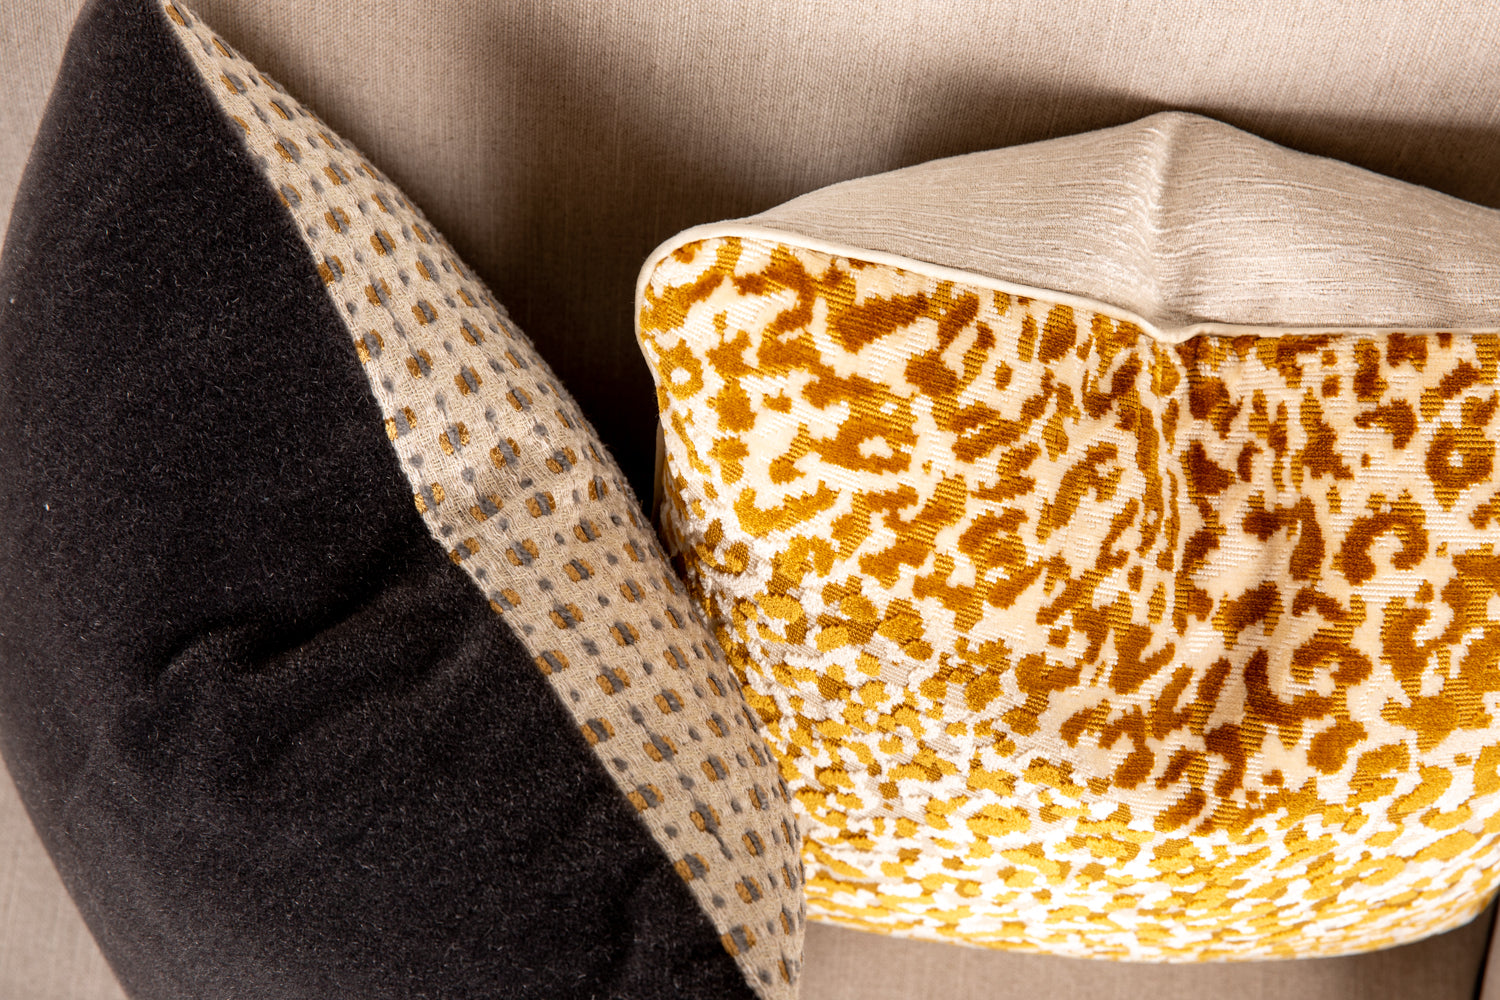 ffabb toss pillows, RADG fabrics, moahir and velvet animal print